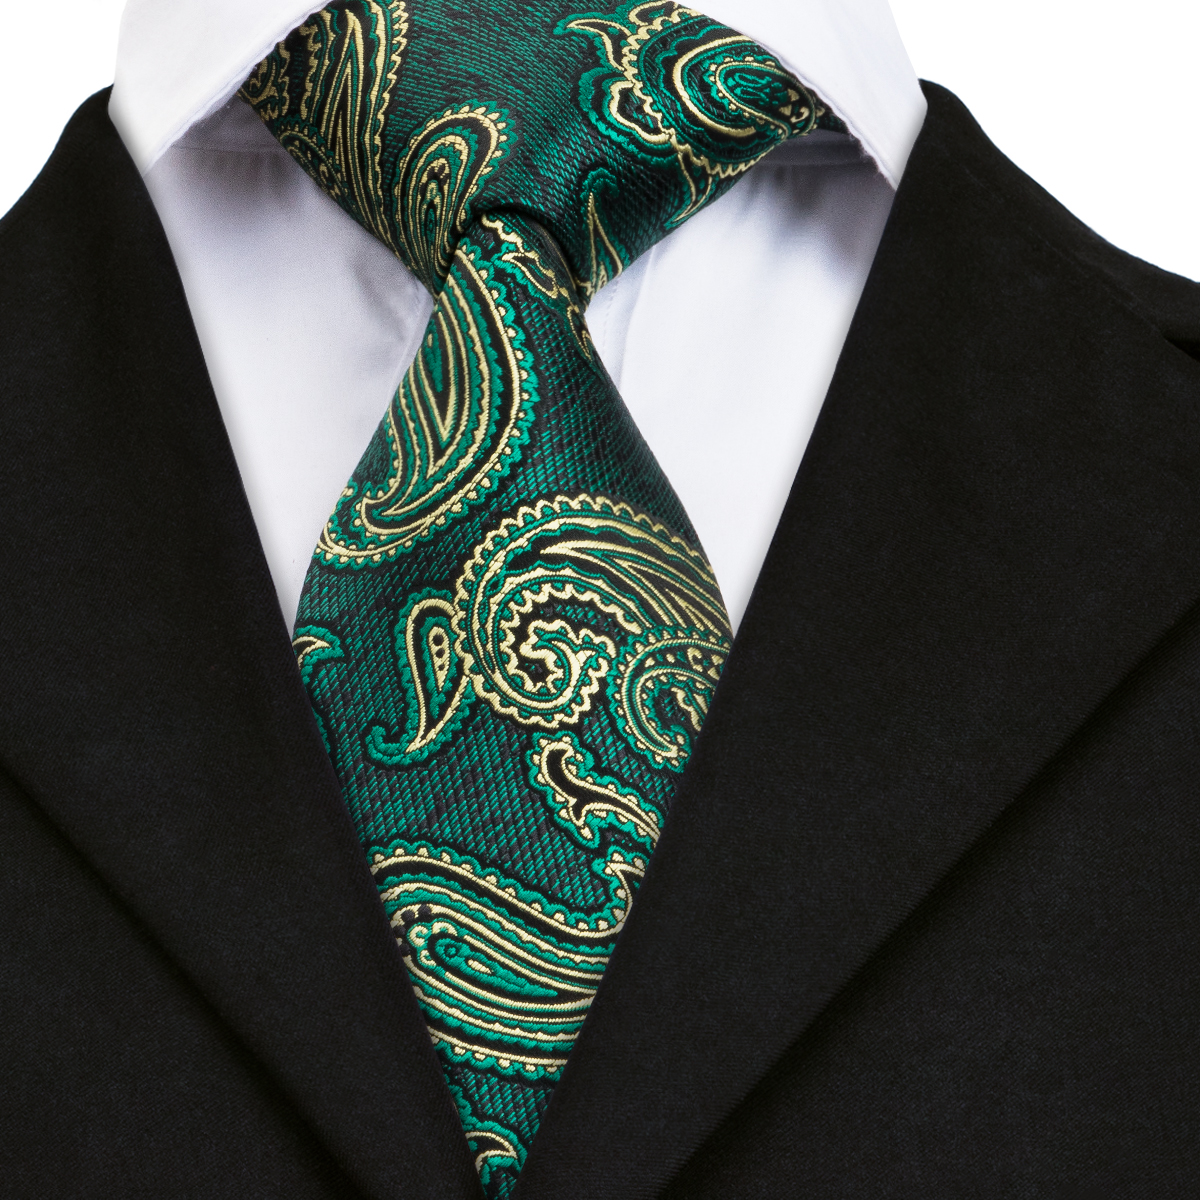 Aliexpress.com : Buy DN 1746 Classic Paisley Ties For Men